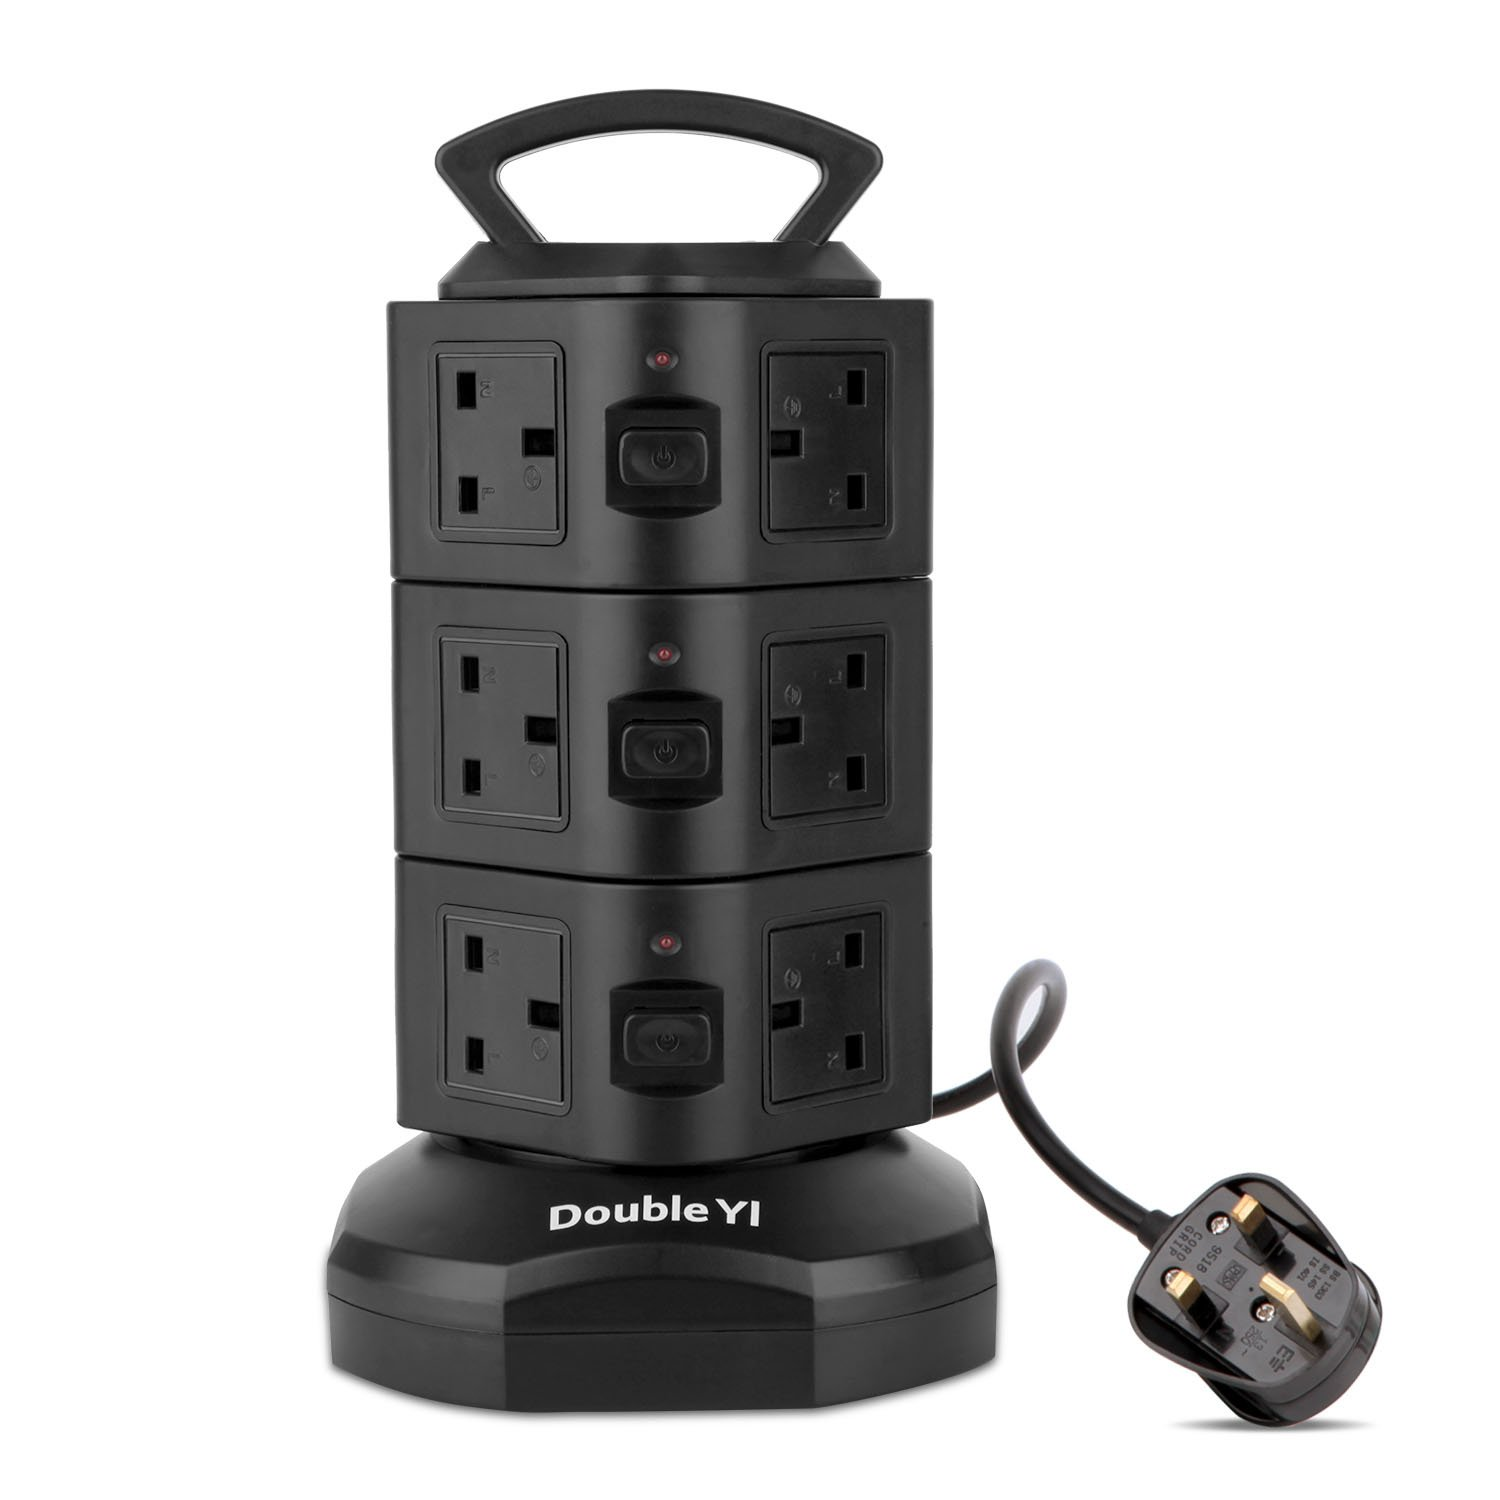 DoubleYI Extension lead socket extension power extension 12 way outlet Surge Protection 12 Gang Power Strip with Retractable 3m/9.8Ft DoubleYI-BN